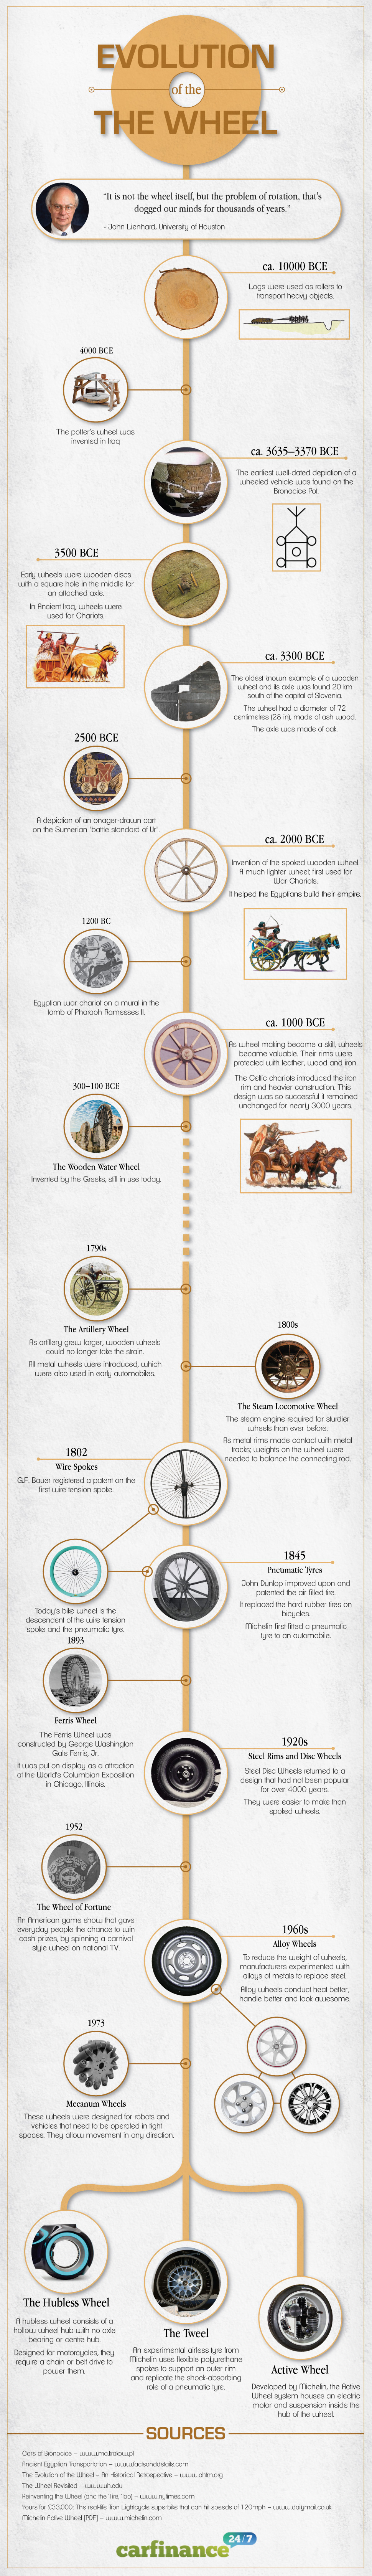 evolution-of-the-wheel